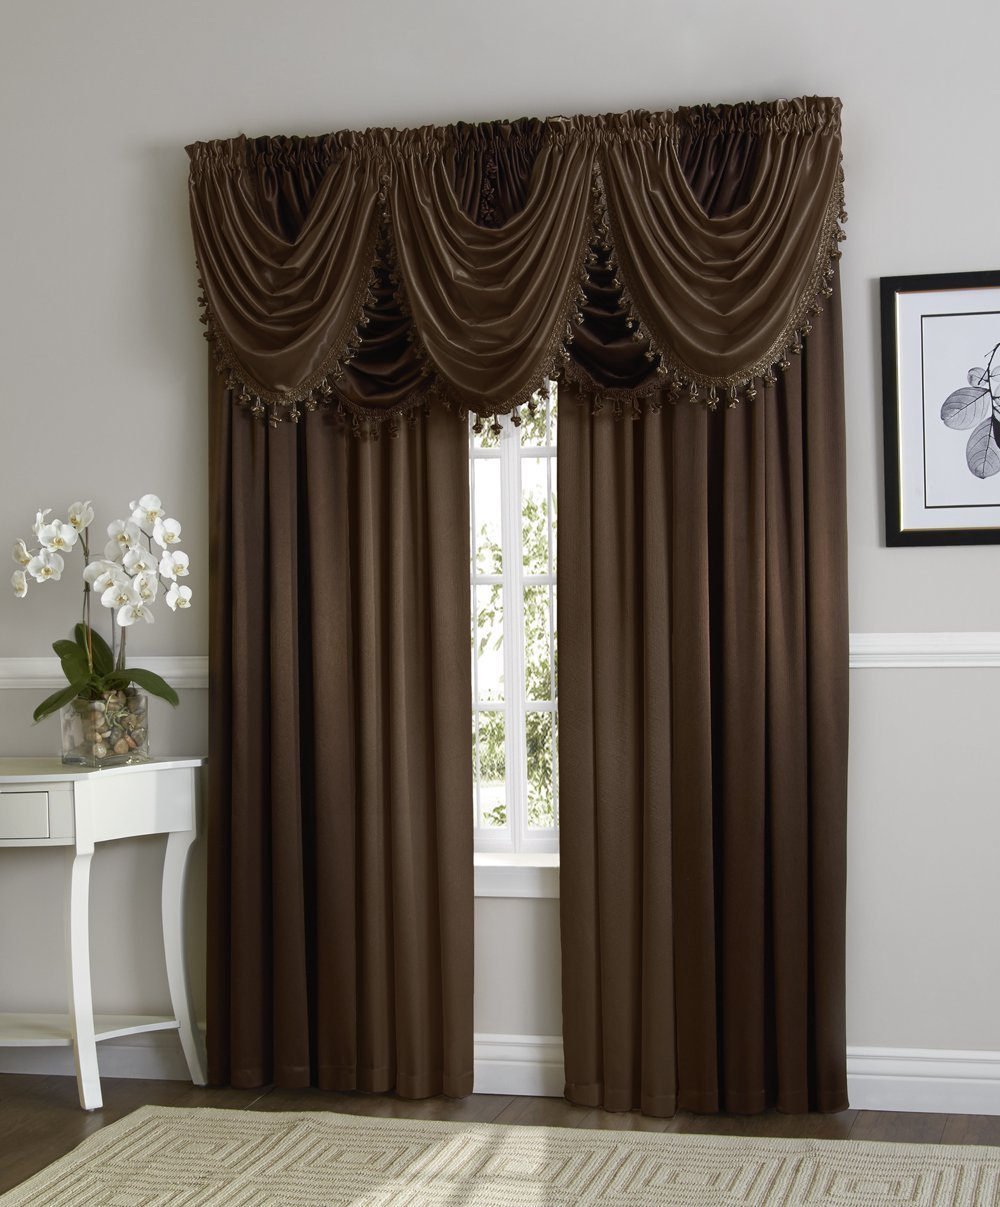 Hilton Rod Pocket Waterfall Valance Marburn Curtains